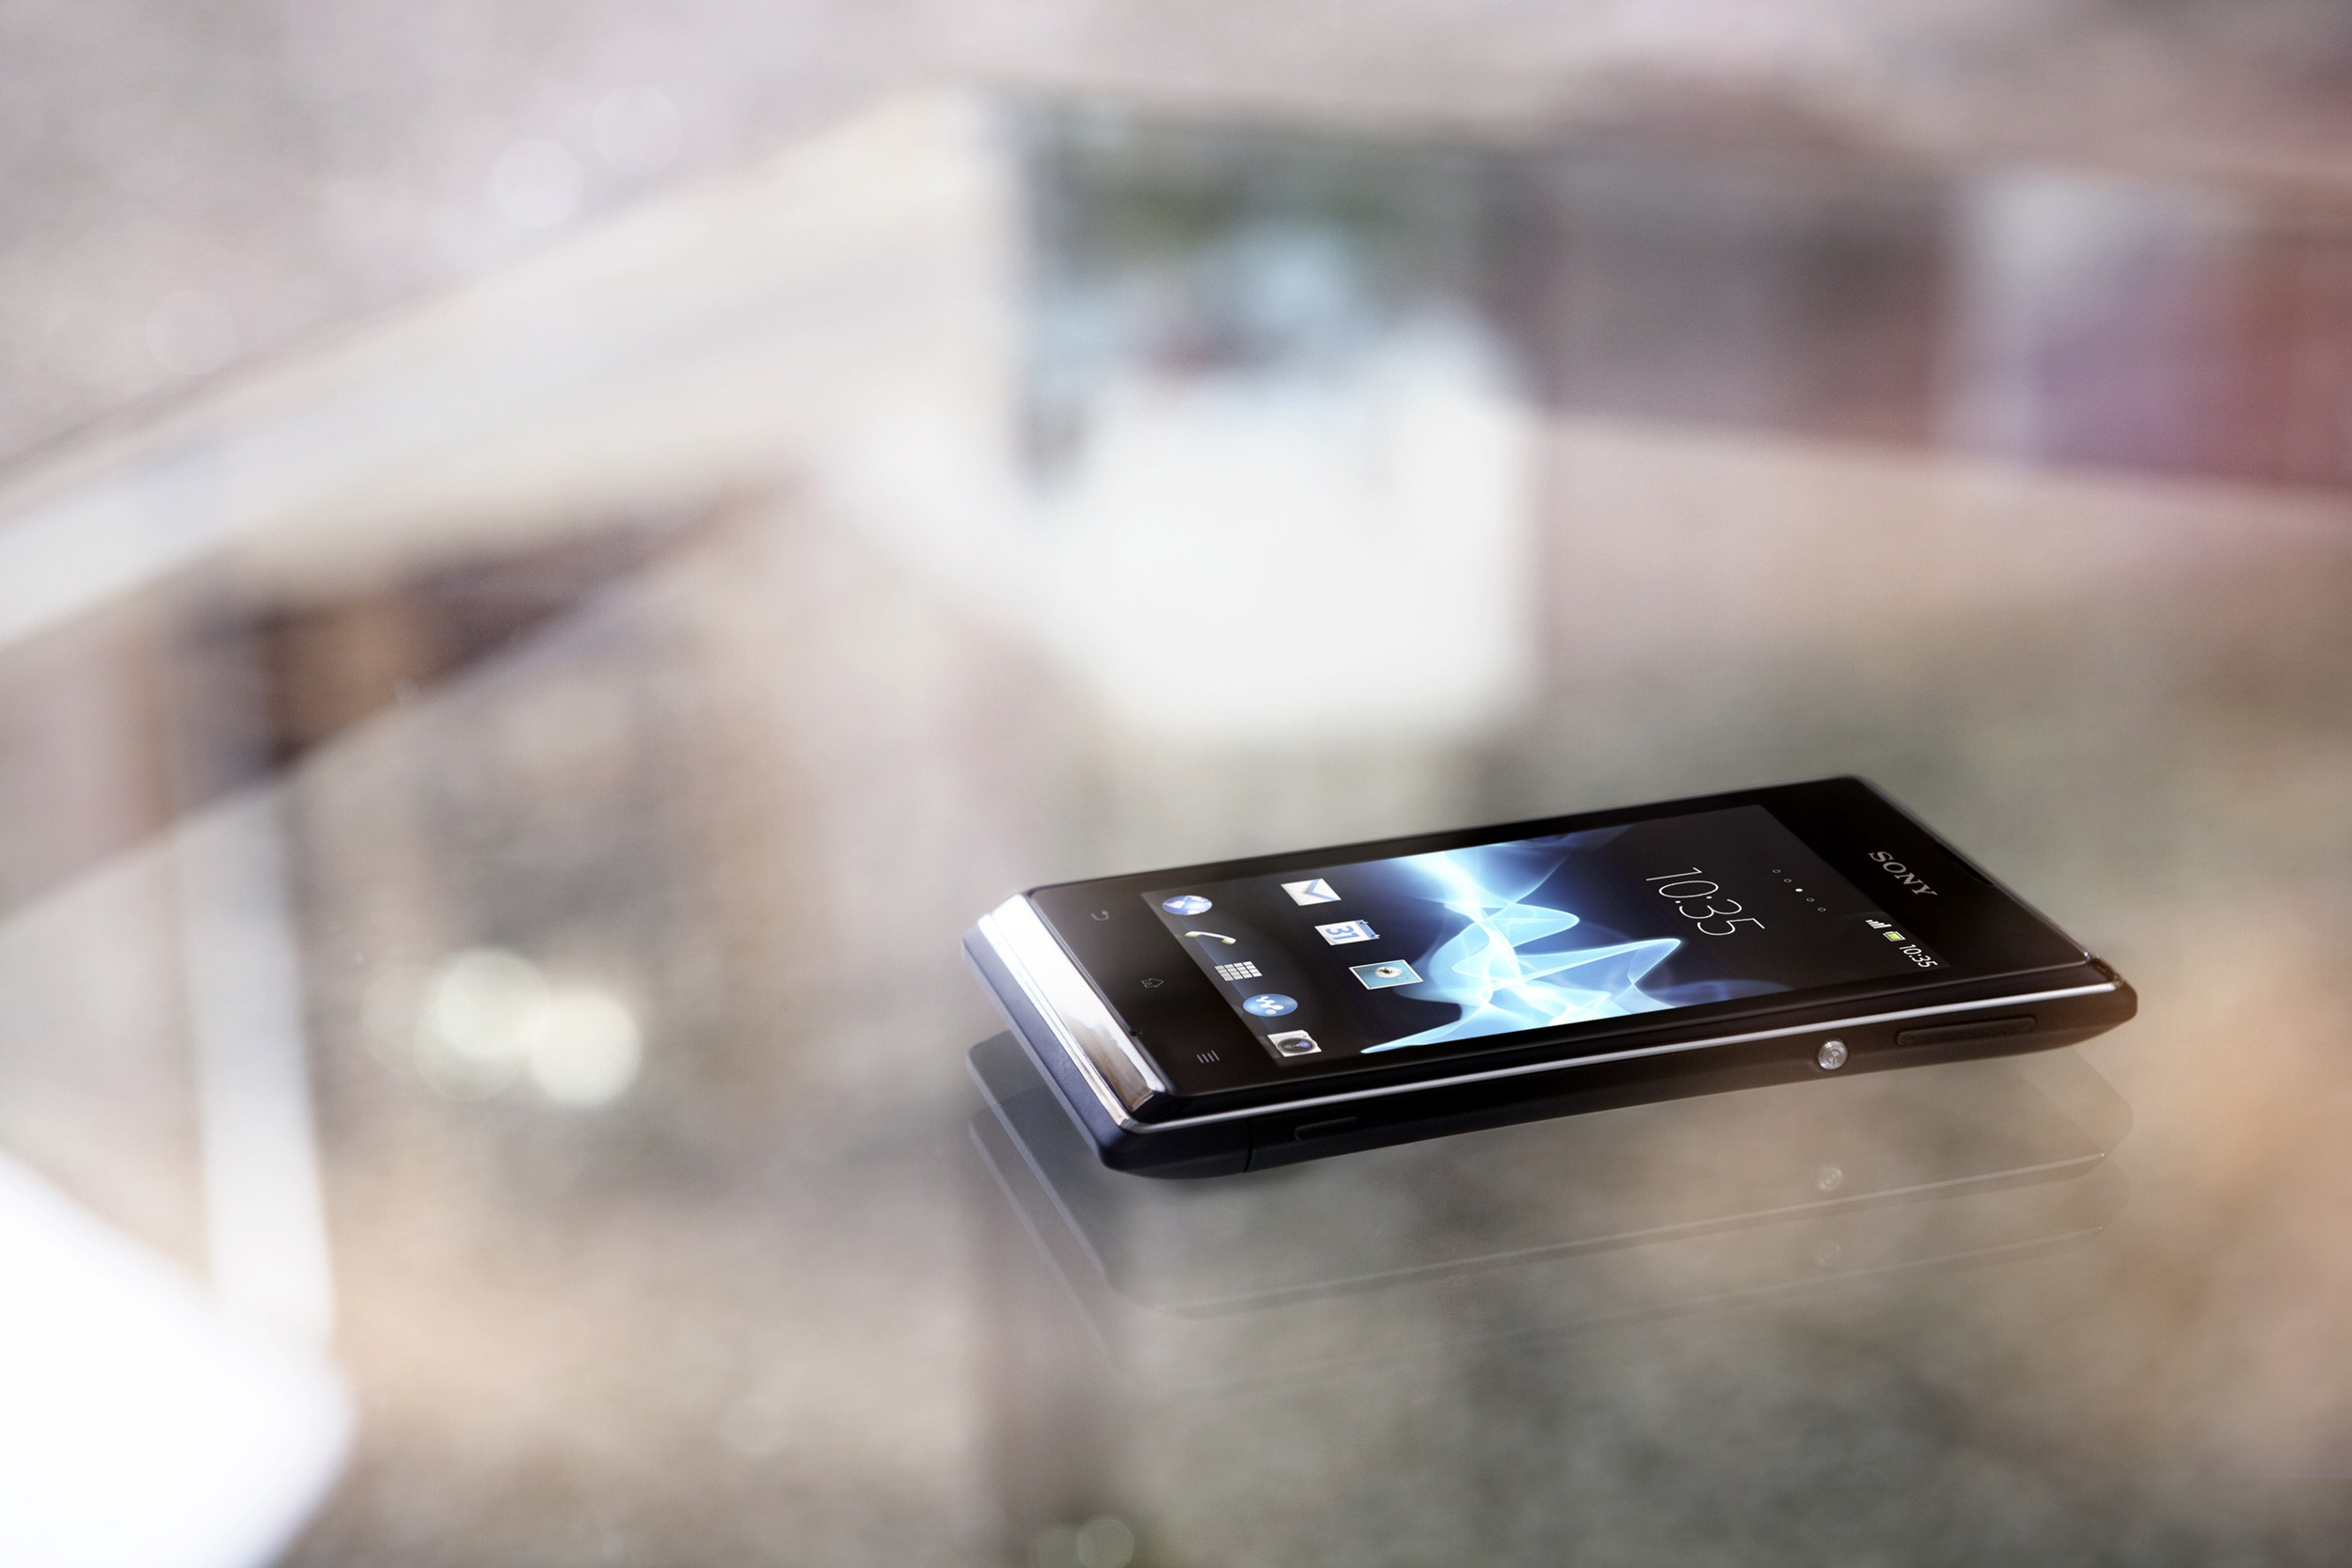 Sony Announces Xperia E And E Dual, Low-End Jelly Bean Handsets ...